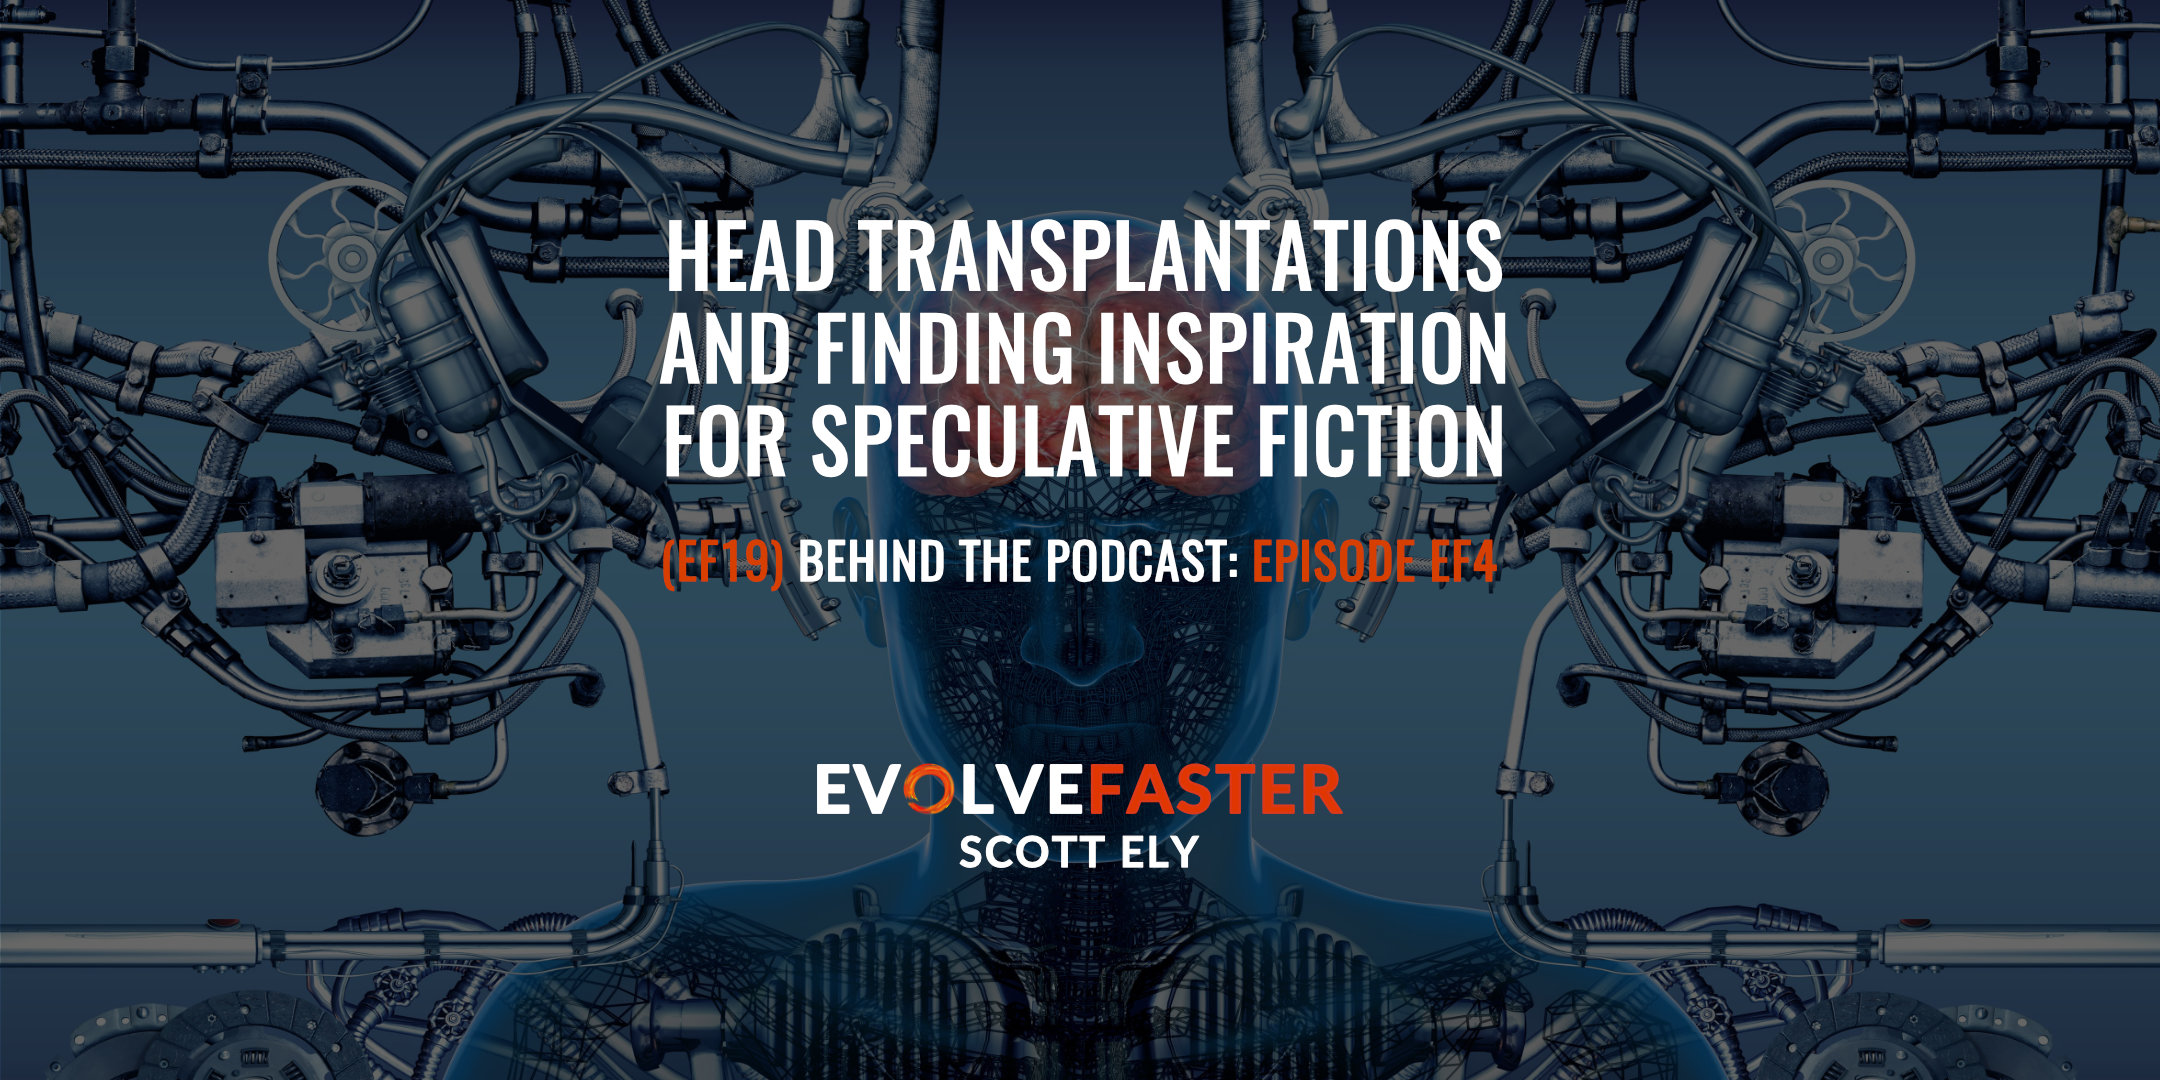 (EF19) BTP-EF4: Head Transplantation and Finding Inspiration for Speculative Fiction Behind the Podcast of Episode EF4